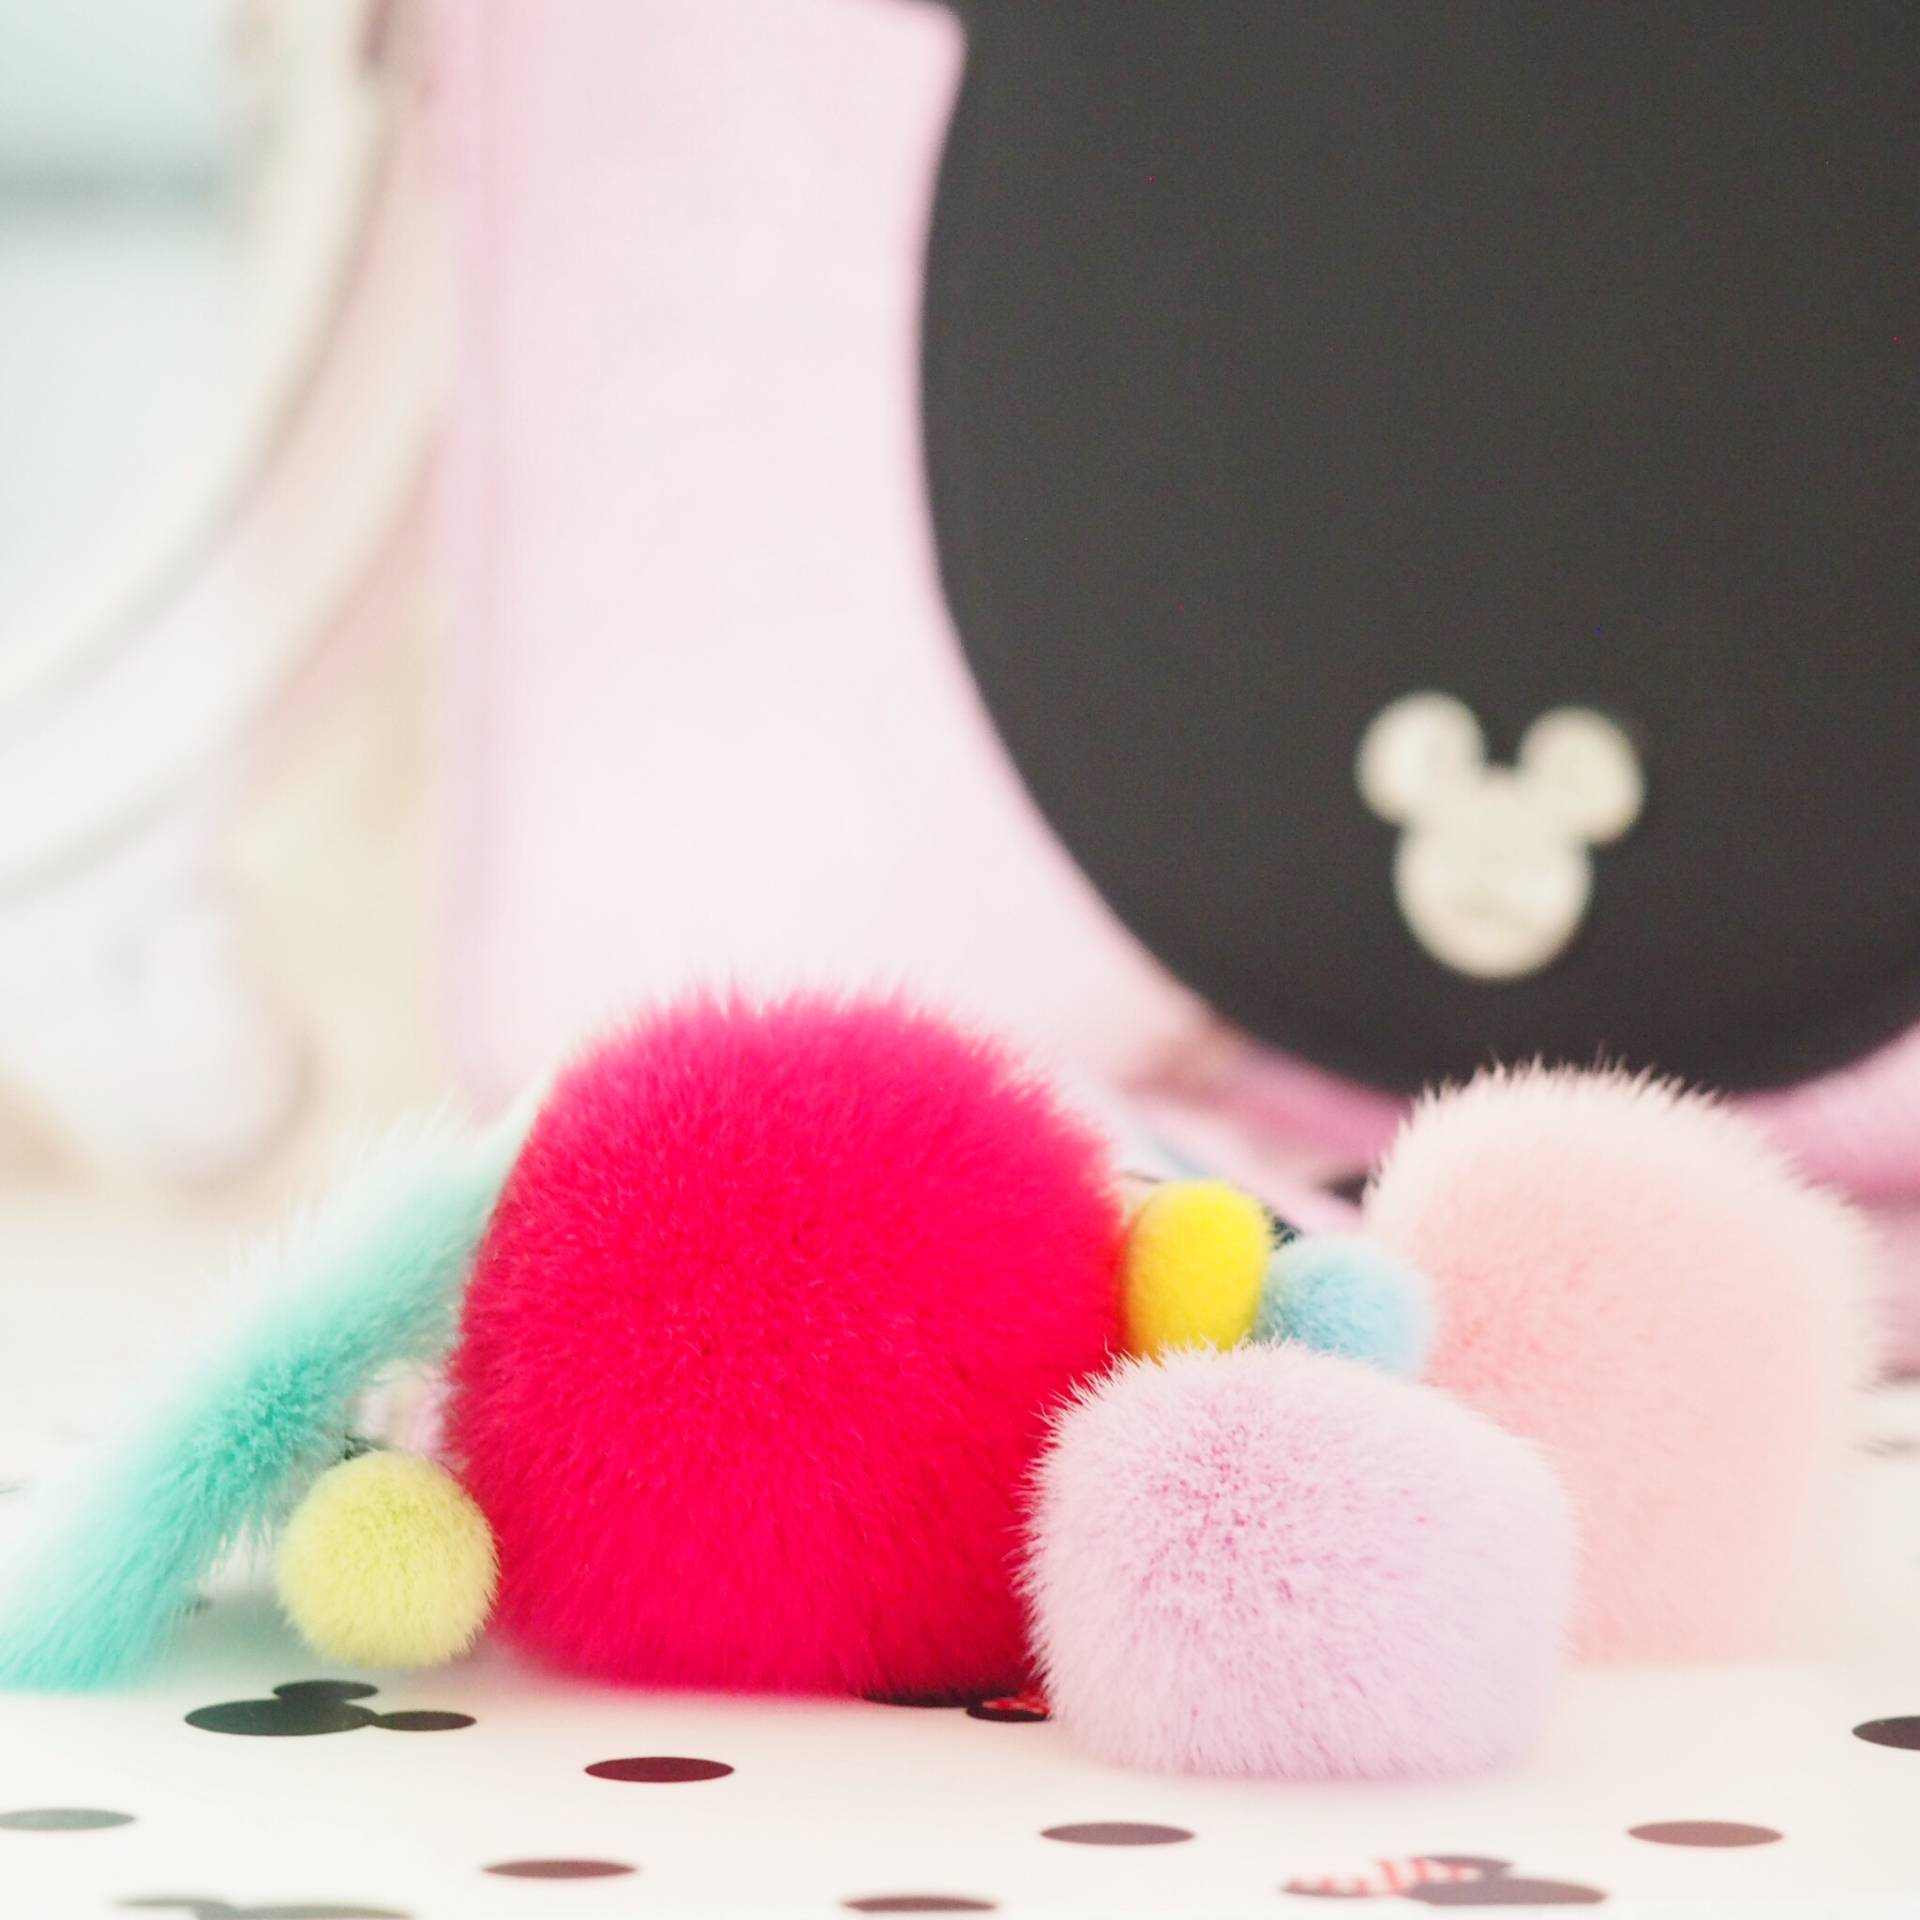 Spectrum Brushes x Disney – Minnie Mouse Collection